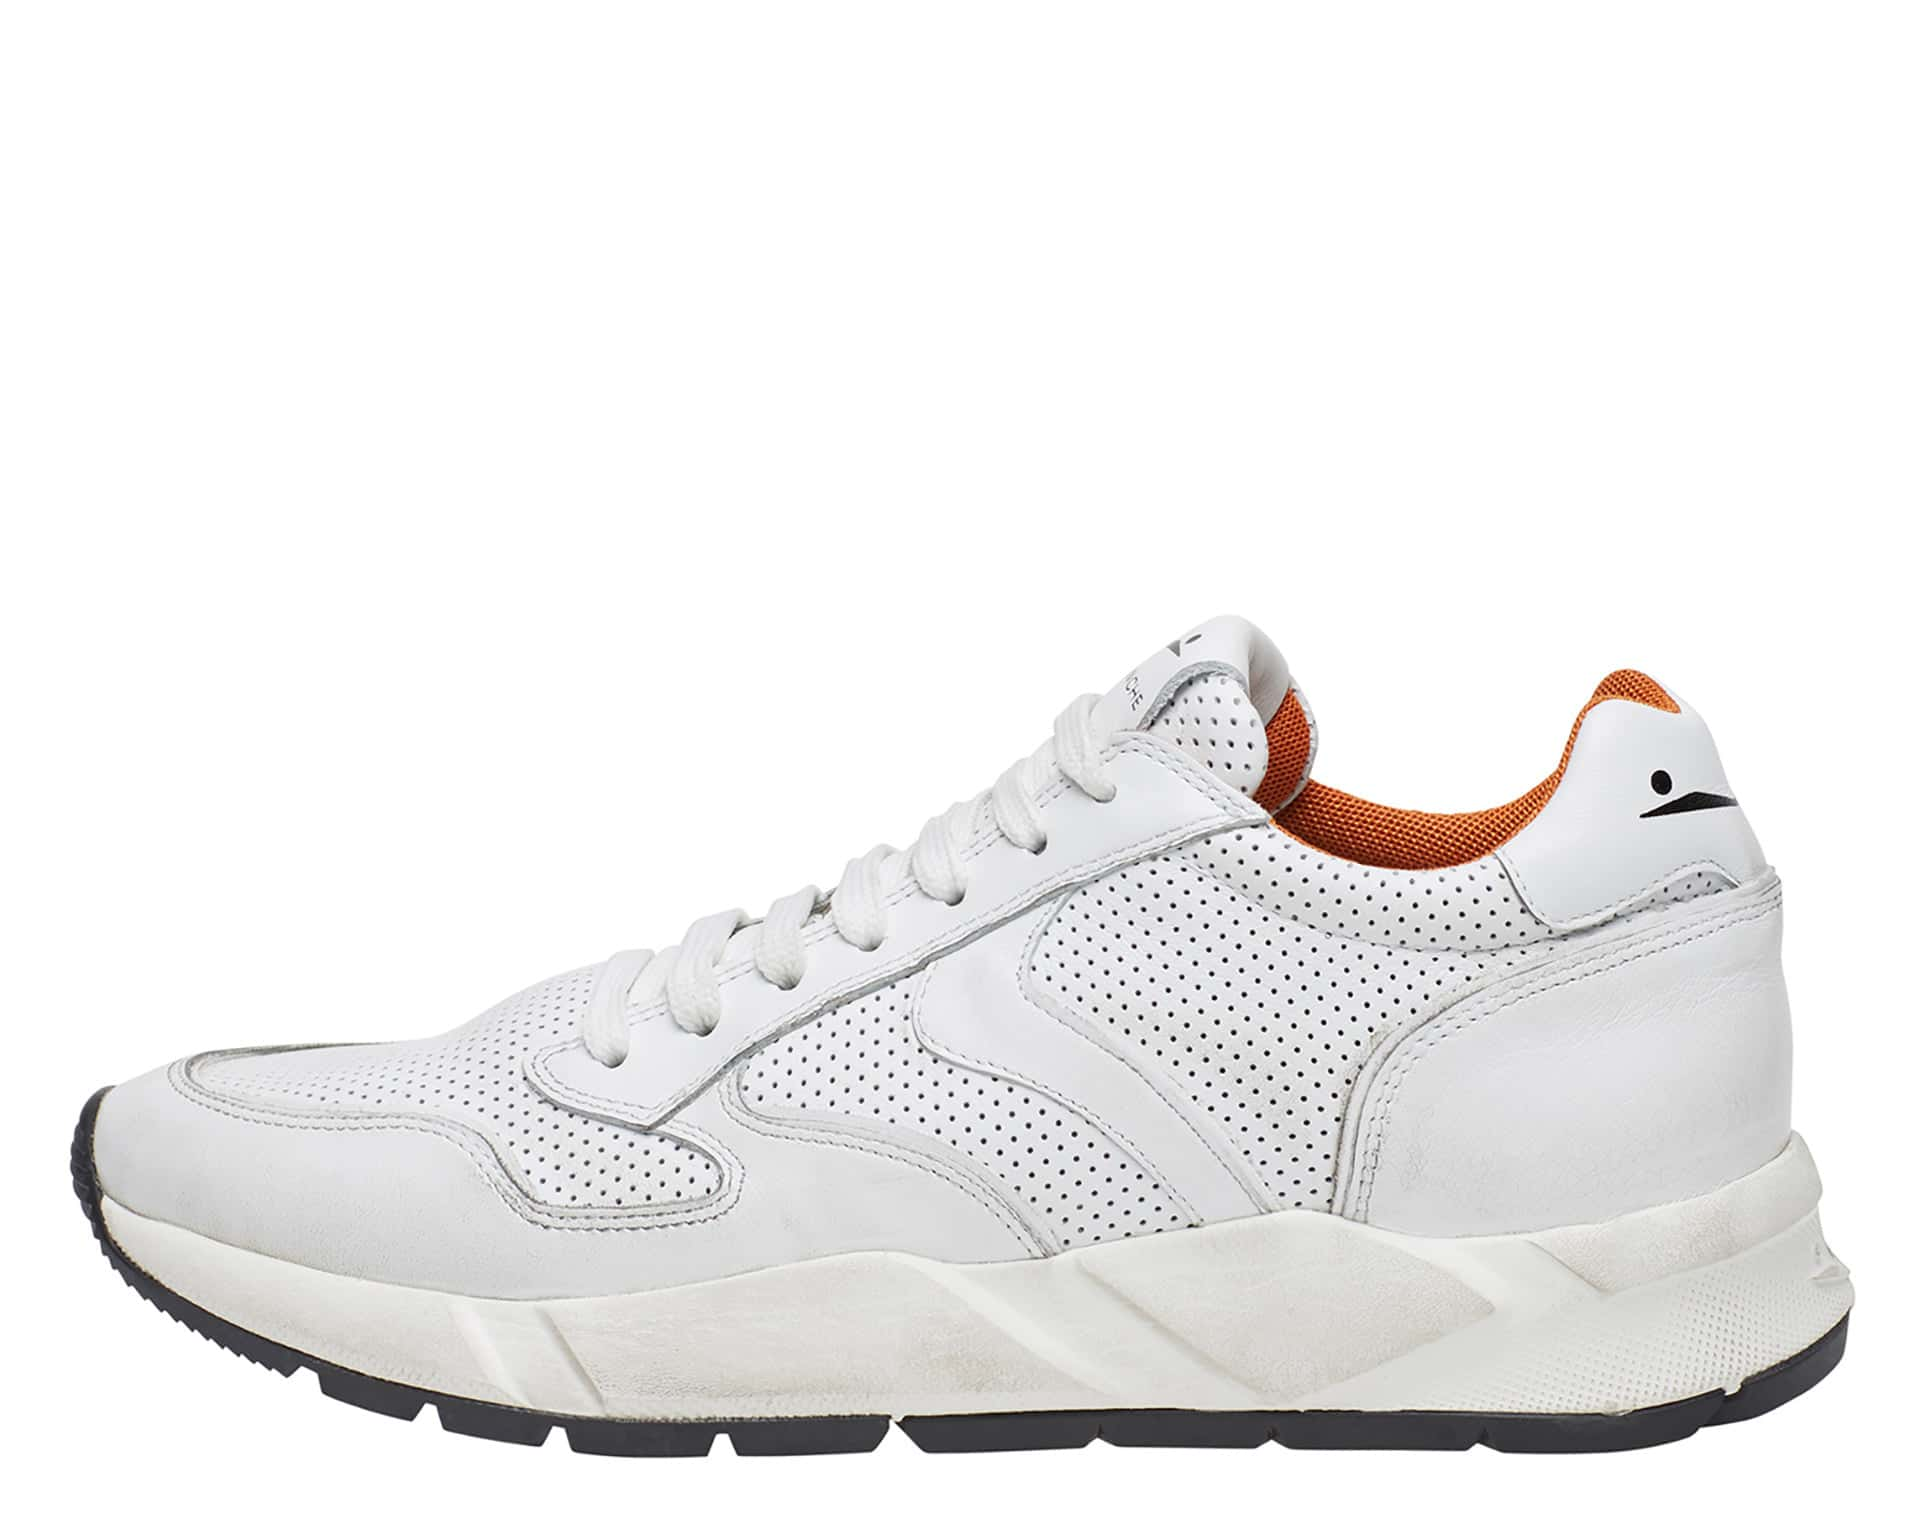 ARPOLH EASY - Leather sneakers - White